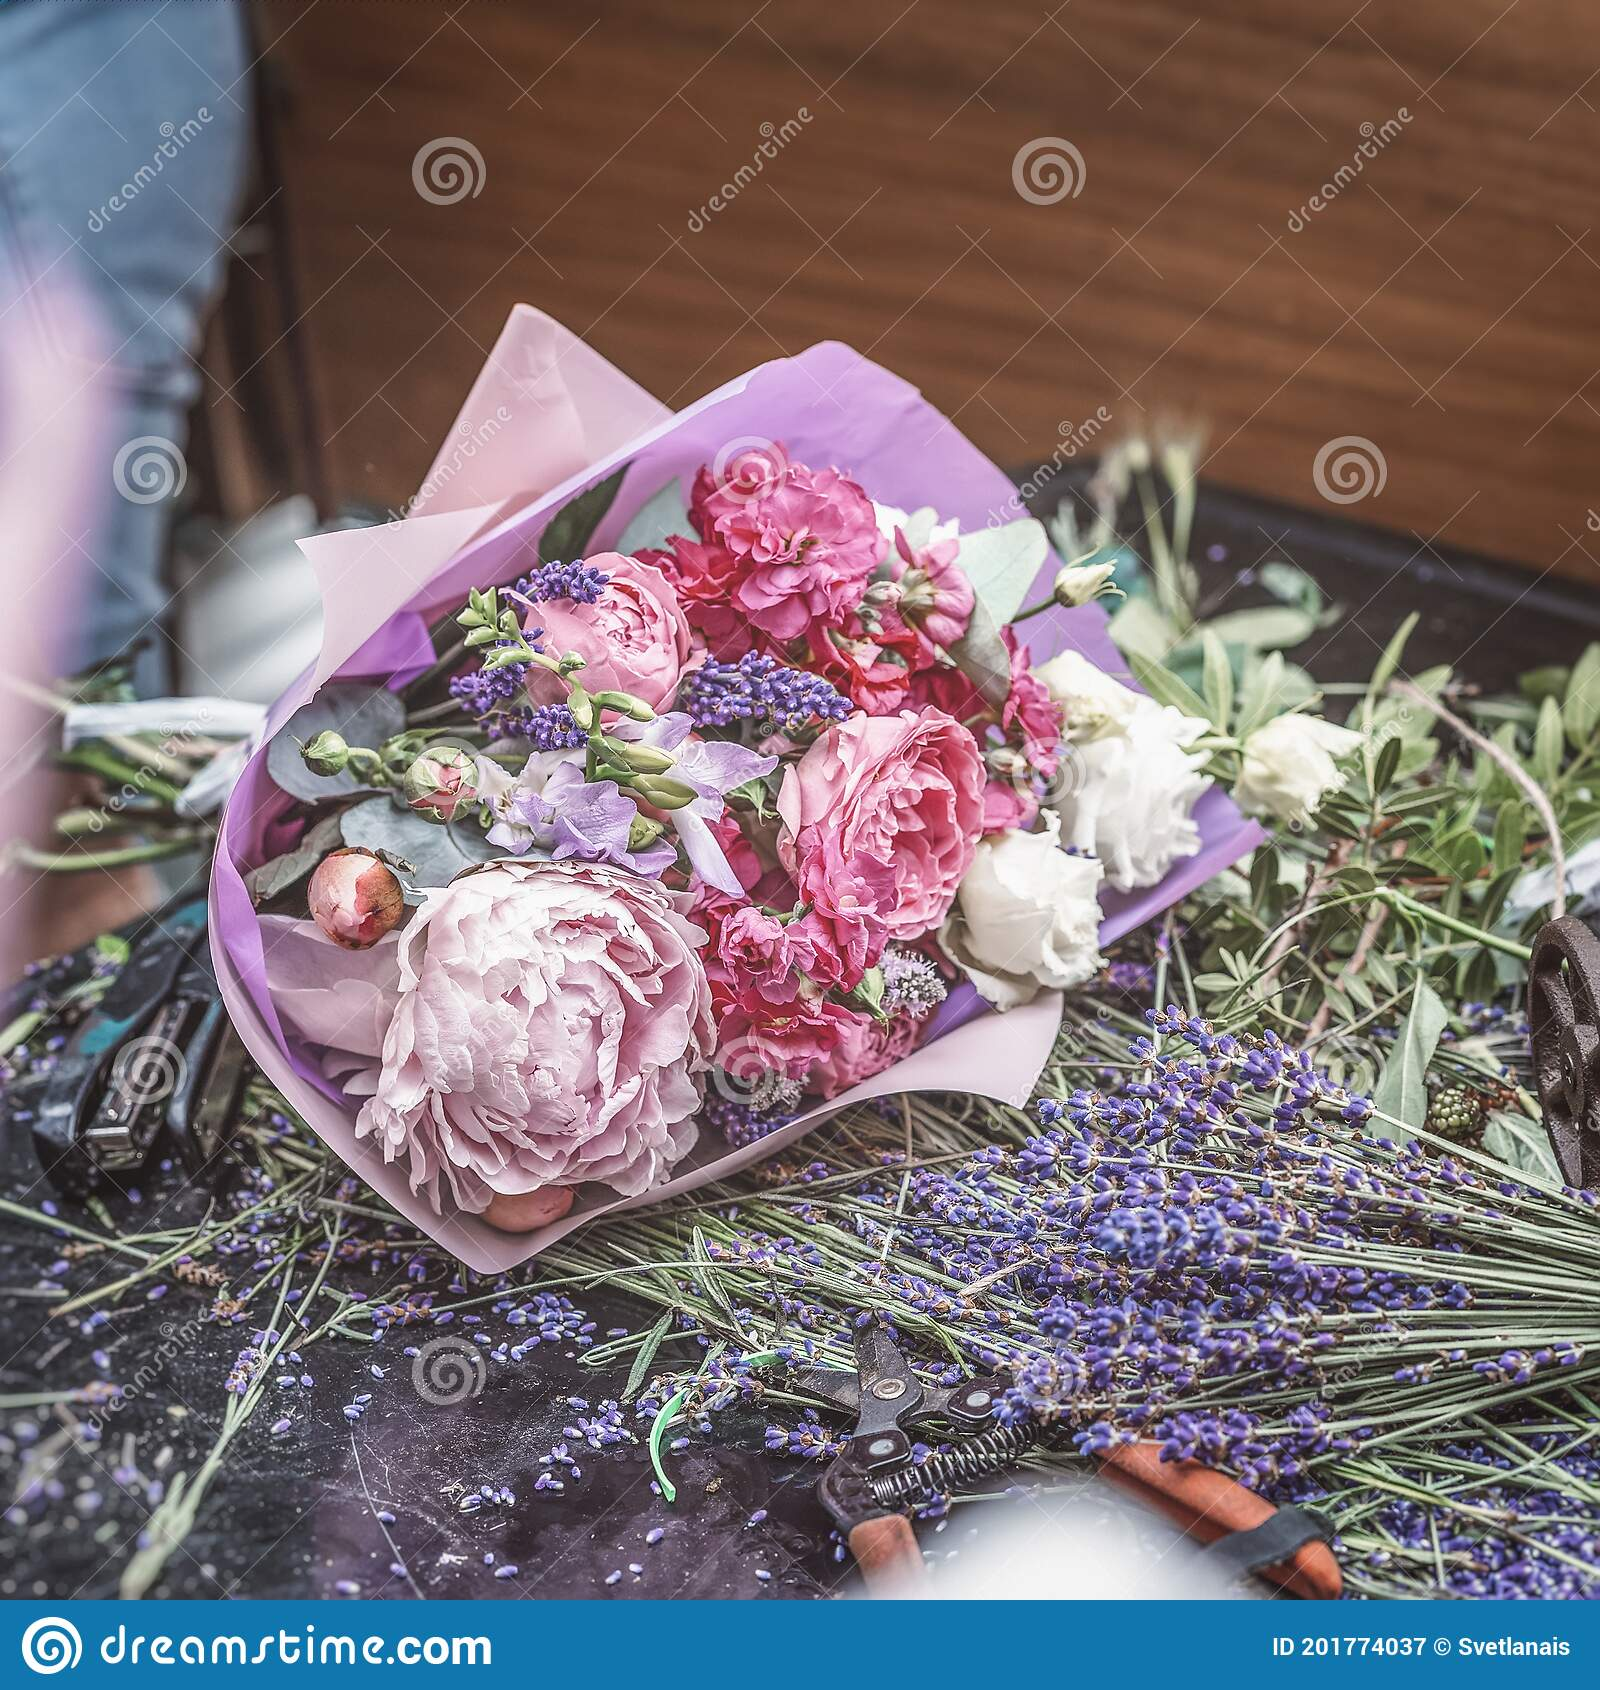 Romantic Bouquet In Pink Shades On The Florist S Table Mix Of Lavender Peonies Roses Stock Image Image Of Arrangement Composition 201774037